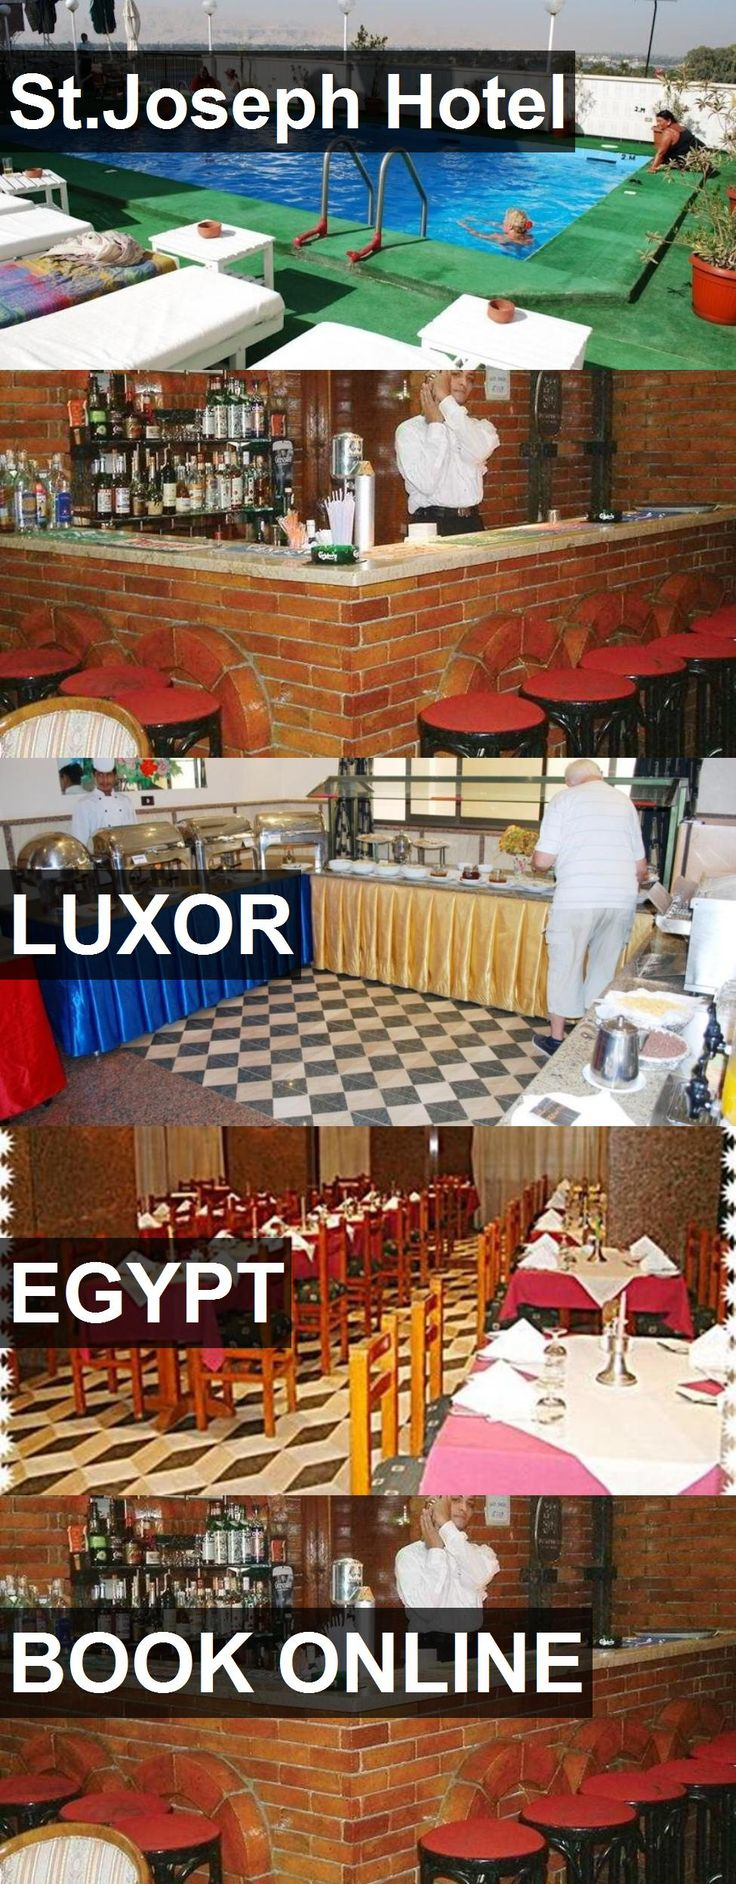 St.Joseph Hotel in Luxor, Egypt. For more information, photos, reviews and best prices please follow the link. #Egypt #Luxor #travel #vacation #hotel